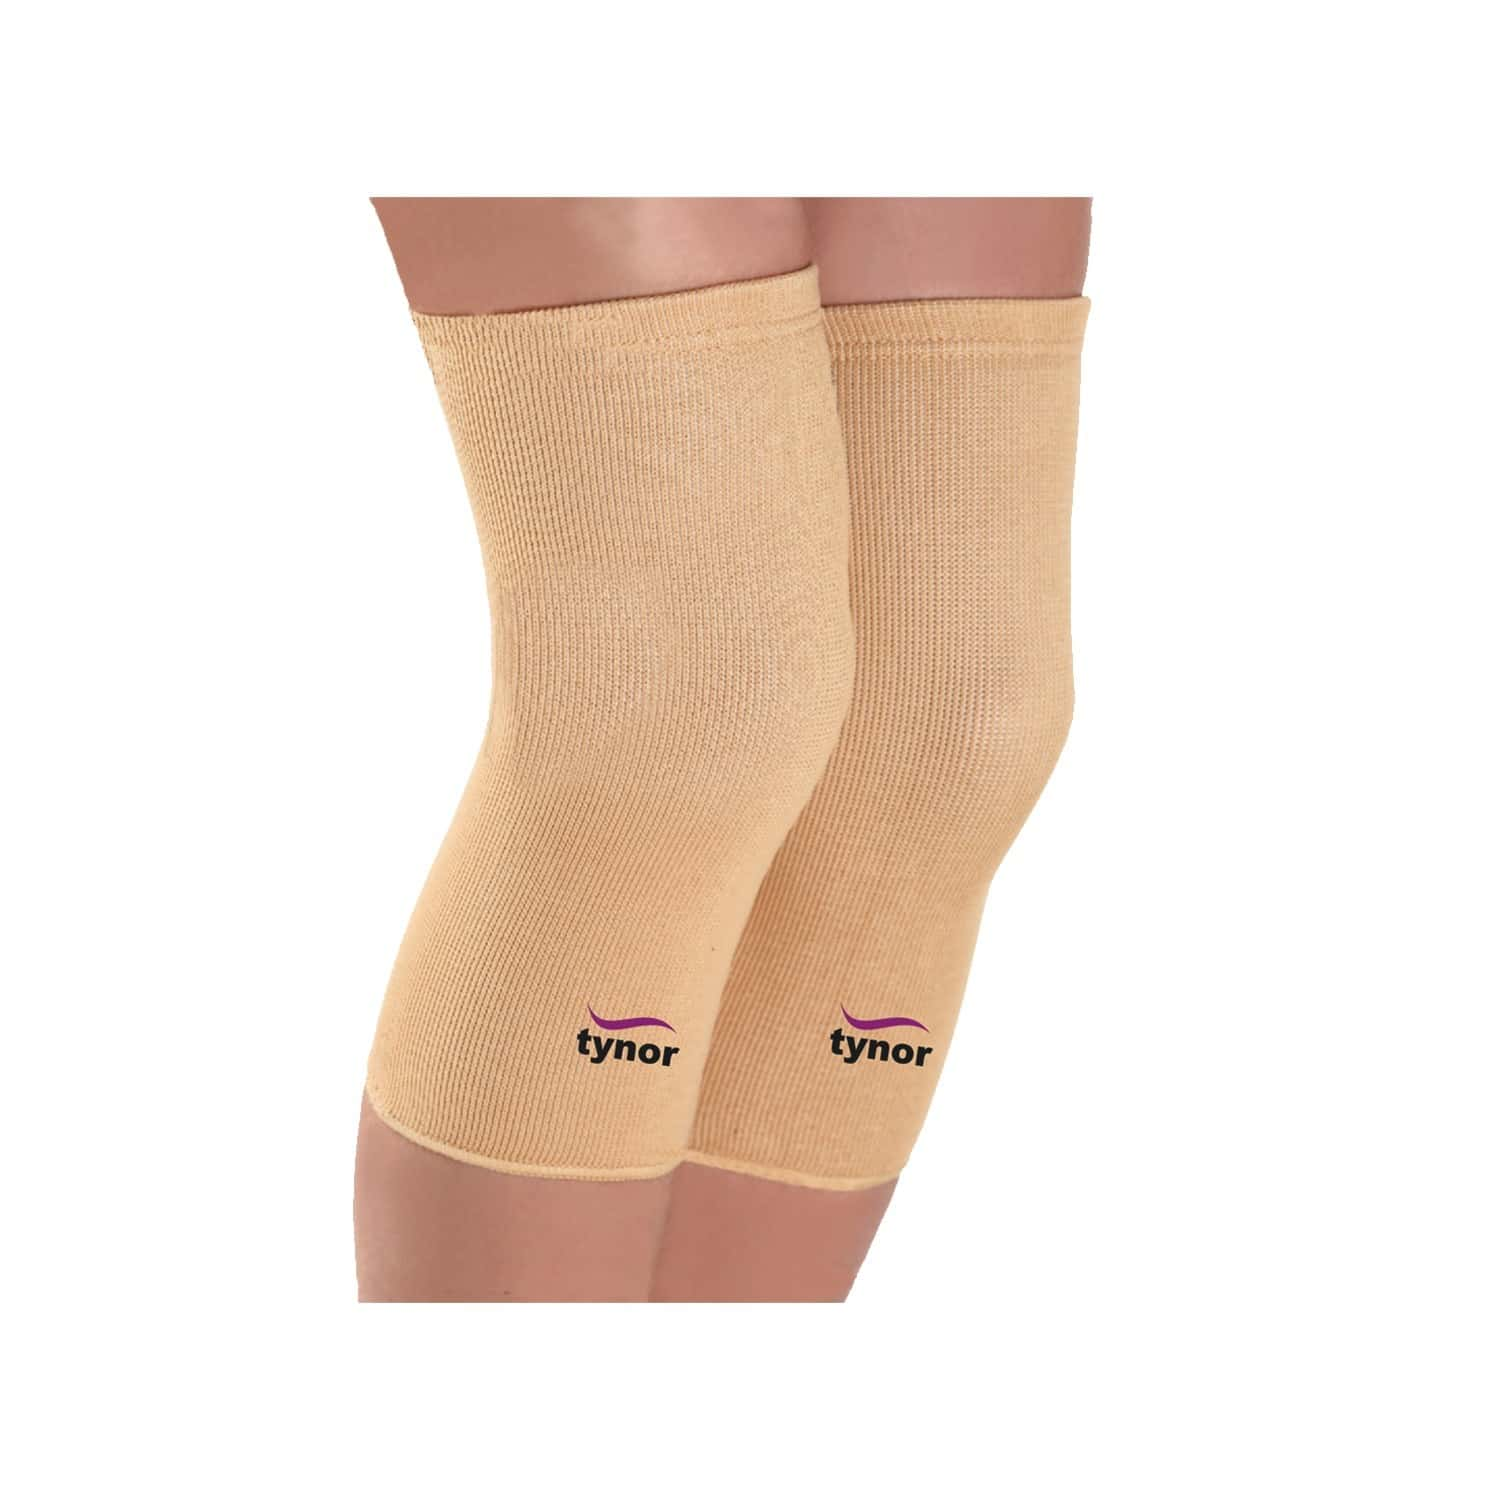 Tynor Knee Cap Pair ( Relieves Pain, Support, Uniform Compression) - Large